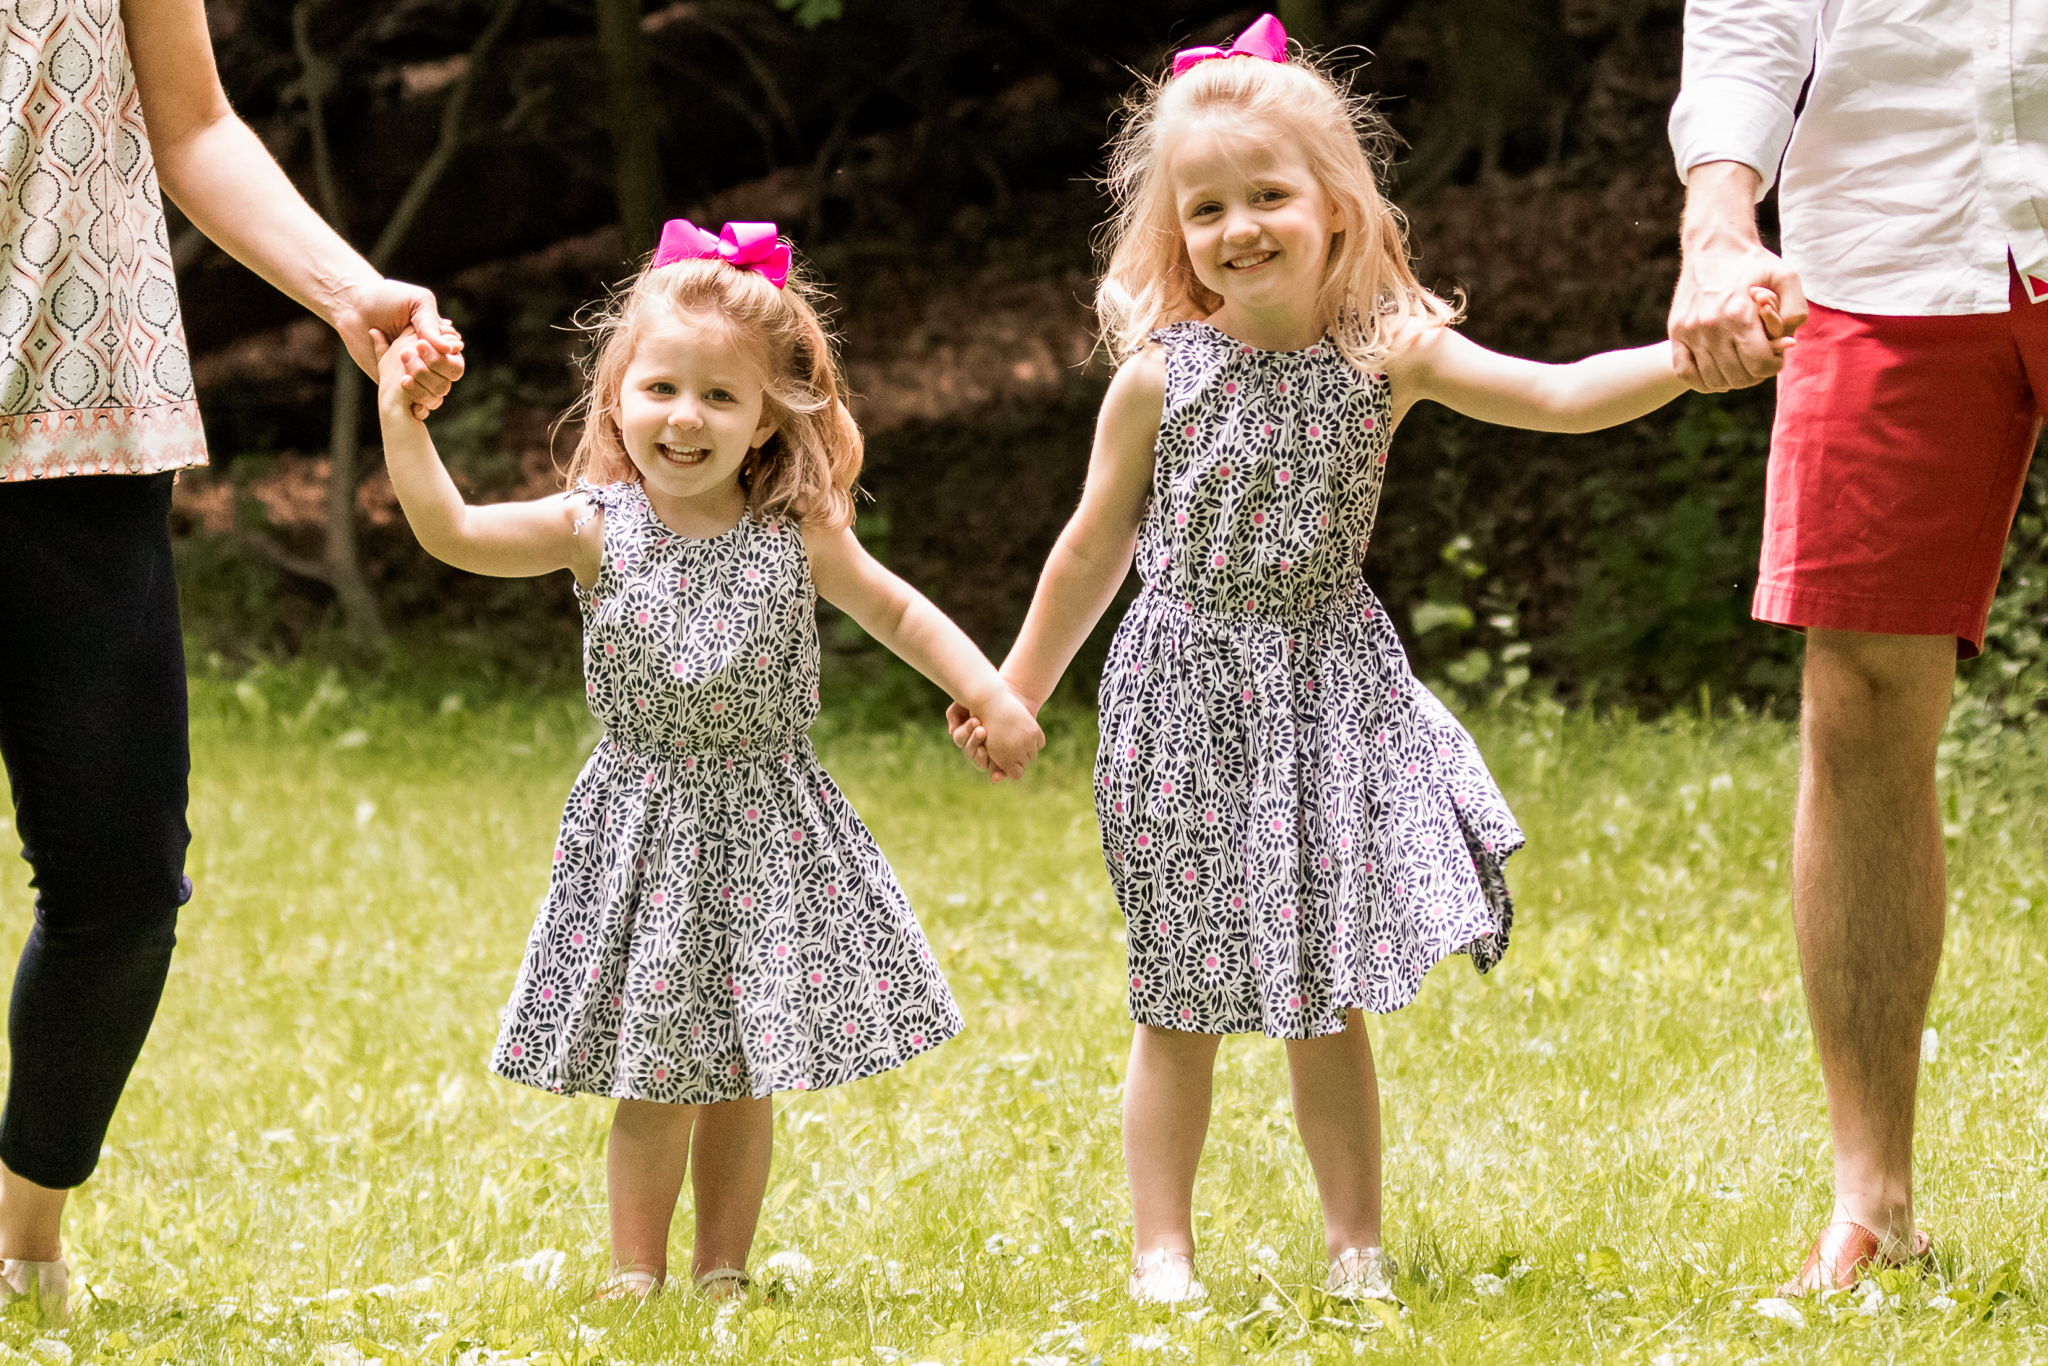 New Jersey Family Photographer, Nancy Elizabeth Photographer, Sisters Smiling